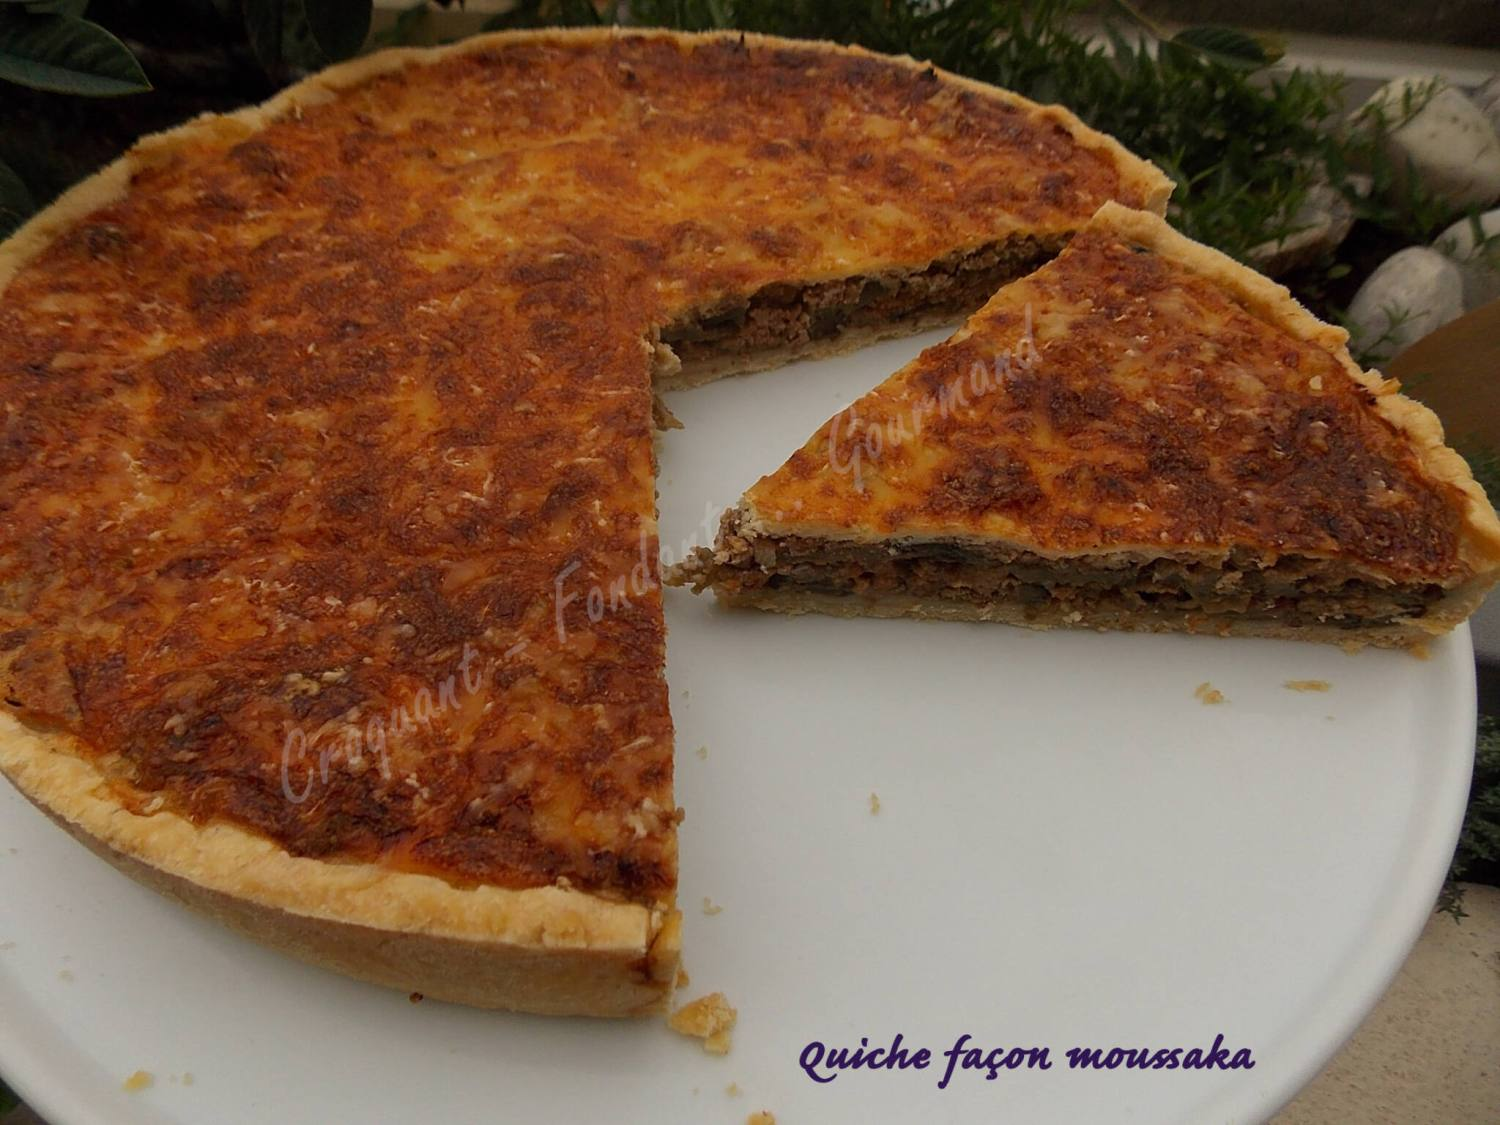 quiche-facon-moussaka-dscn6624